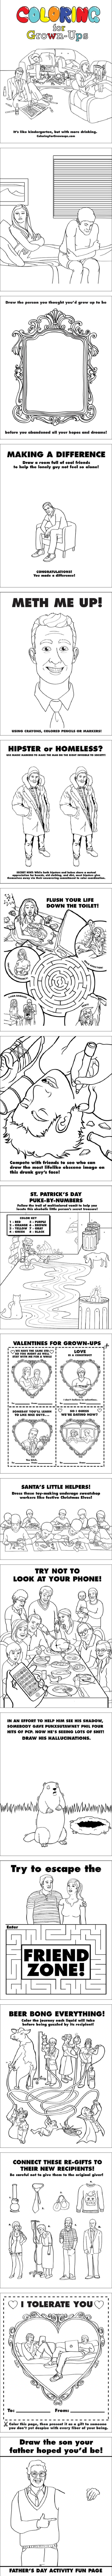 Grown ups colouring book